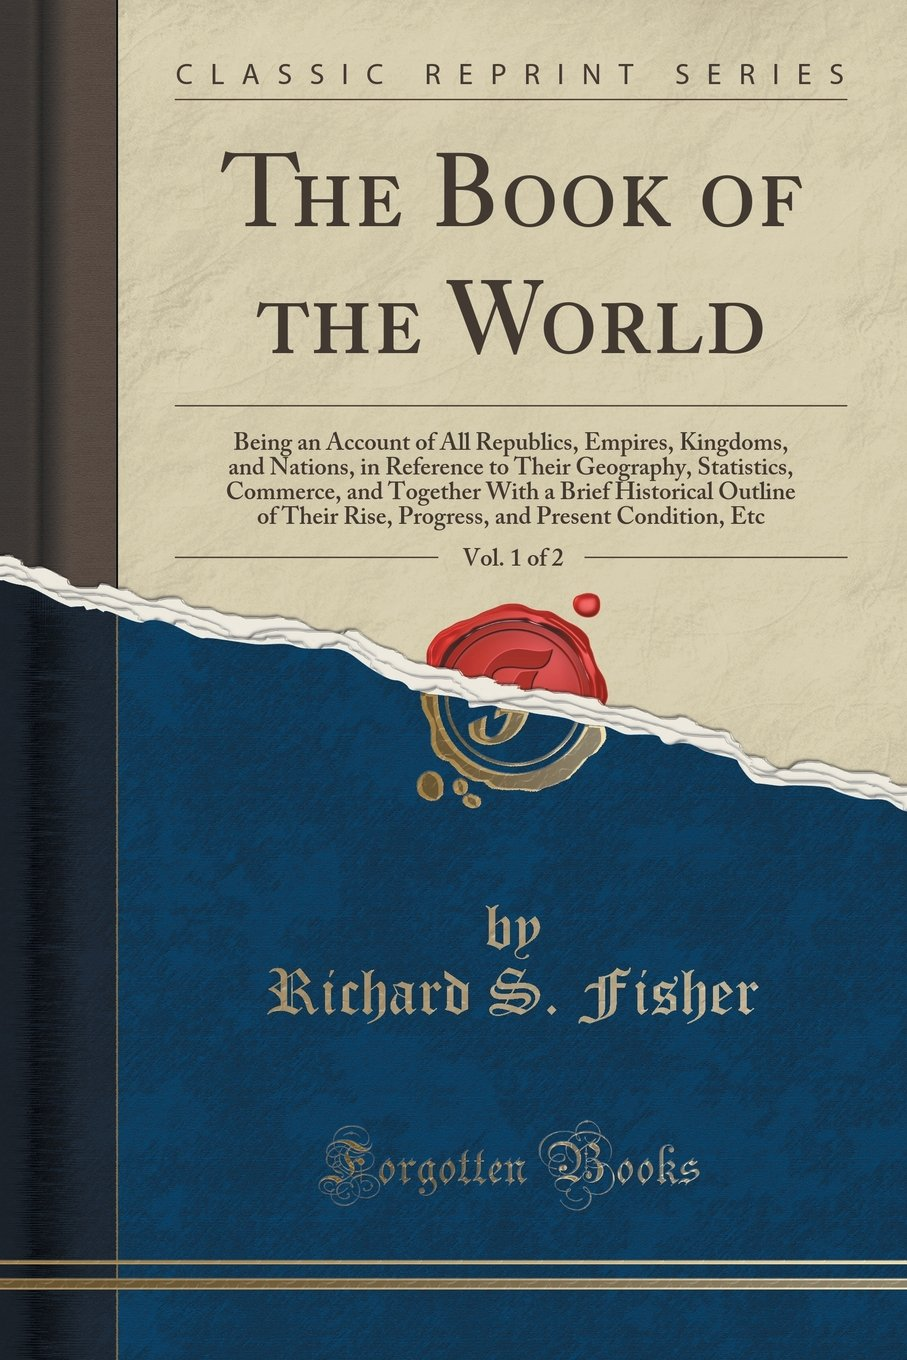 The Book of the World, Vol. 1 of 2: Being an Account of All Republics, Empires, Kingdoms, and Nations, in Reference to Their Geography, Statistics, ... Rise, Progress, and Present Condition, Etc pdf epub